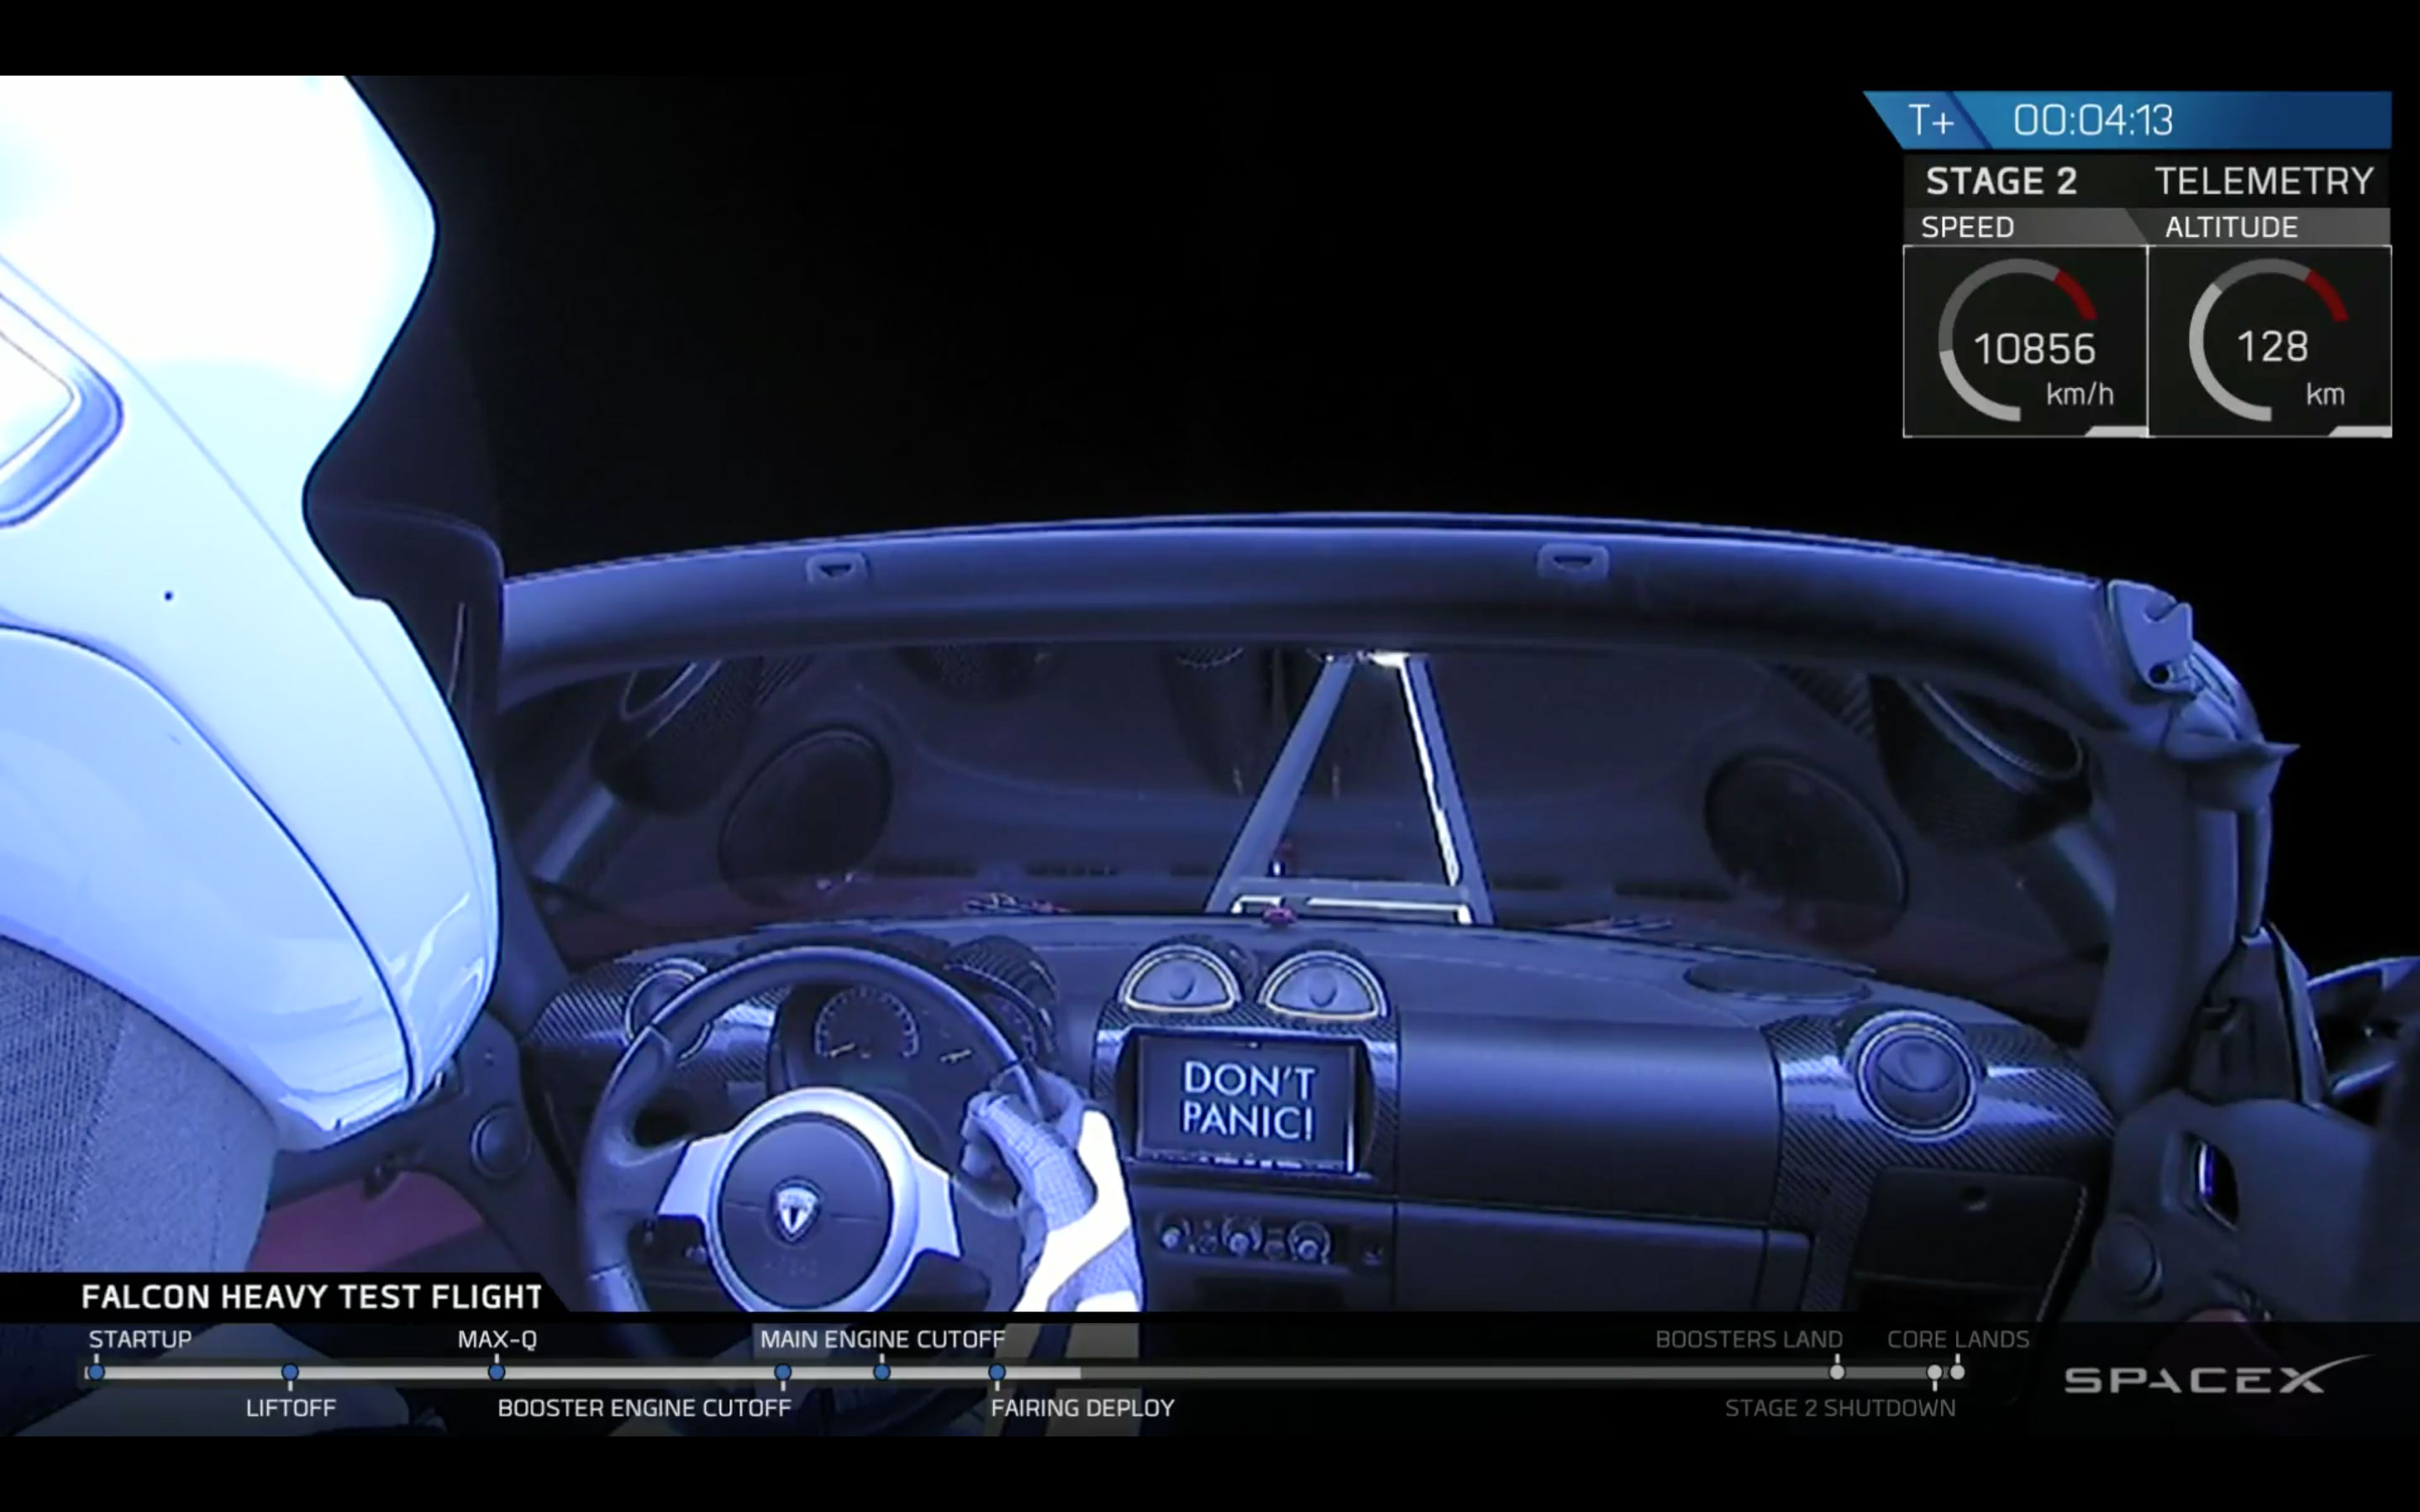 Tesla roadster launched into space by by SpaceX